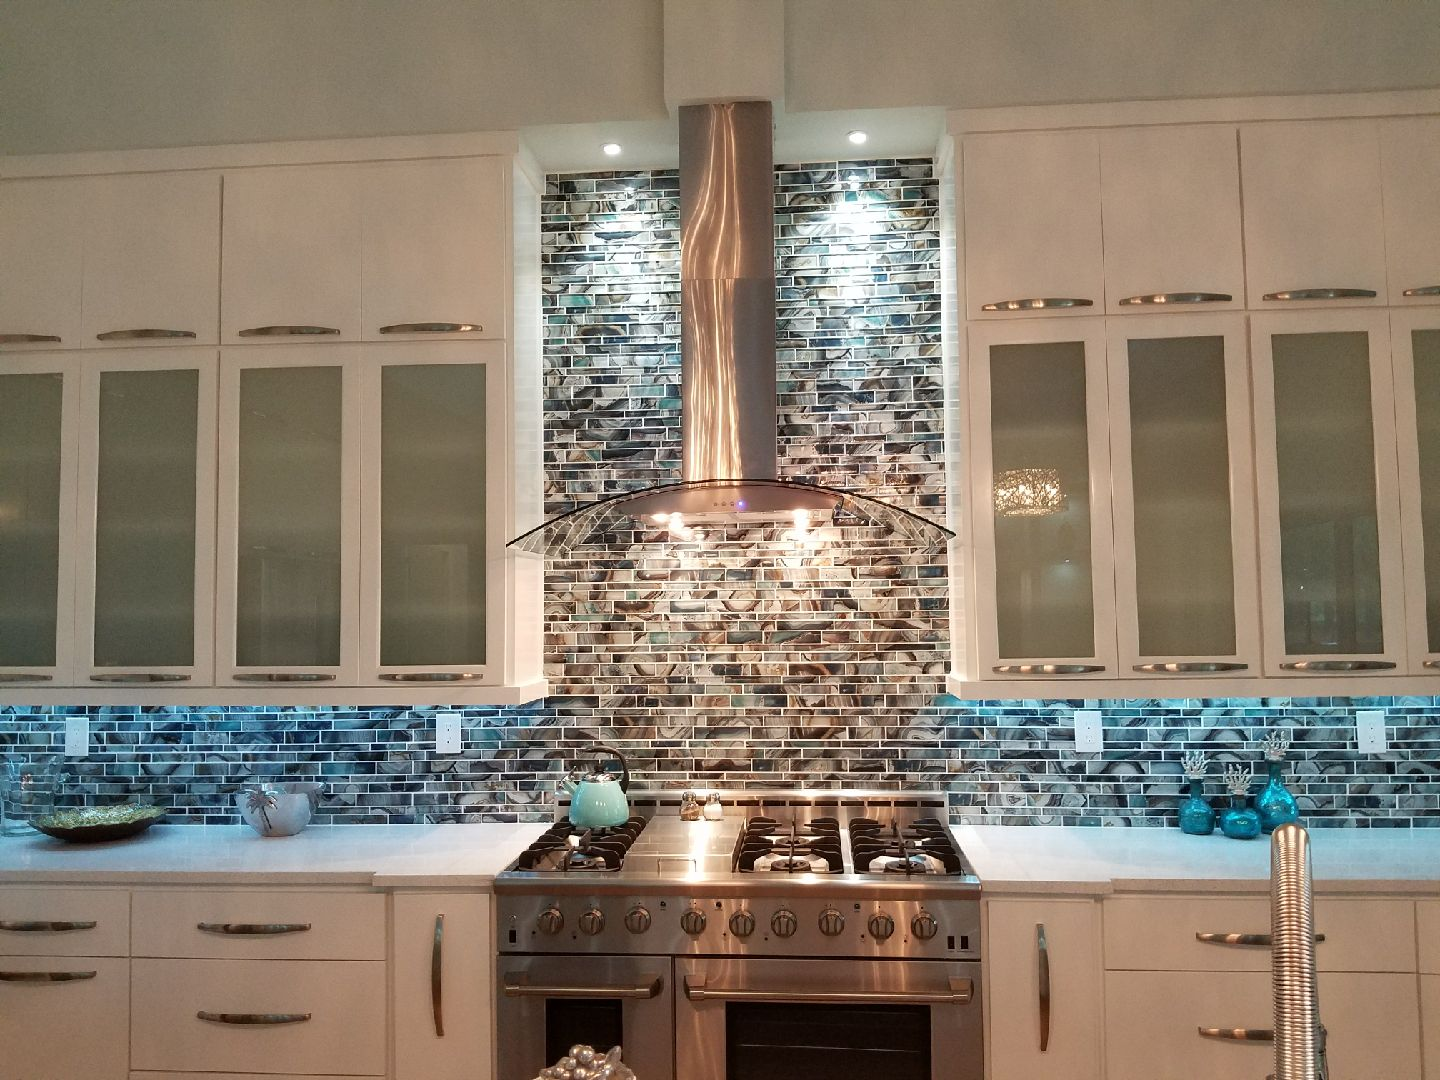 Custom glass tile backsplash in Fairhope, AL from G & J Tile & Floor Covering